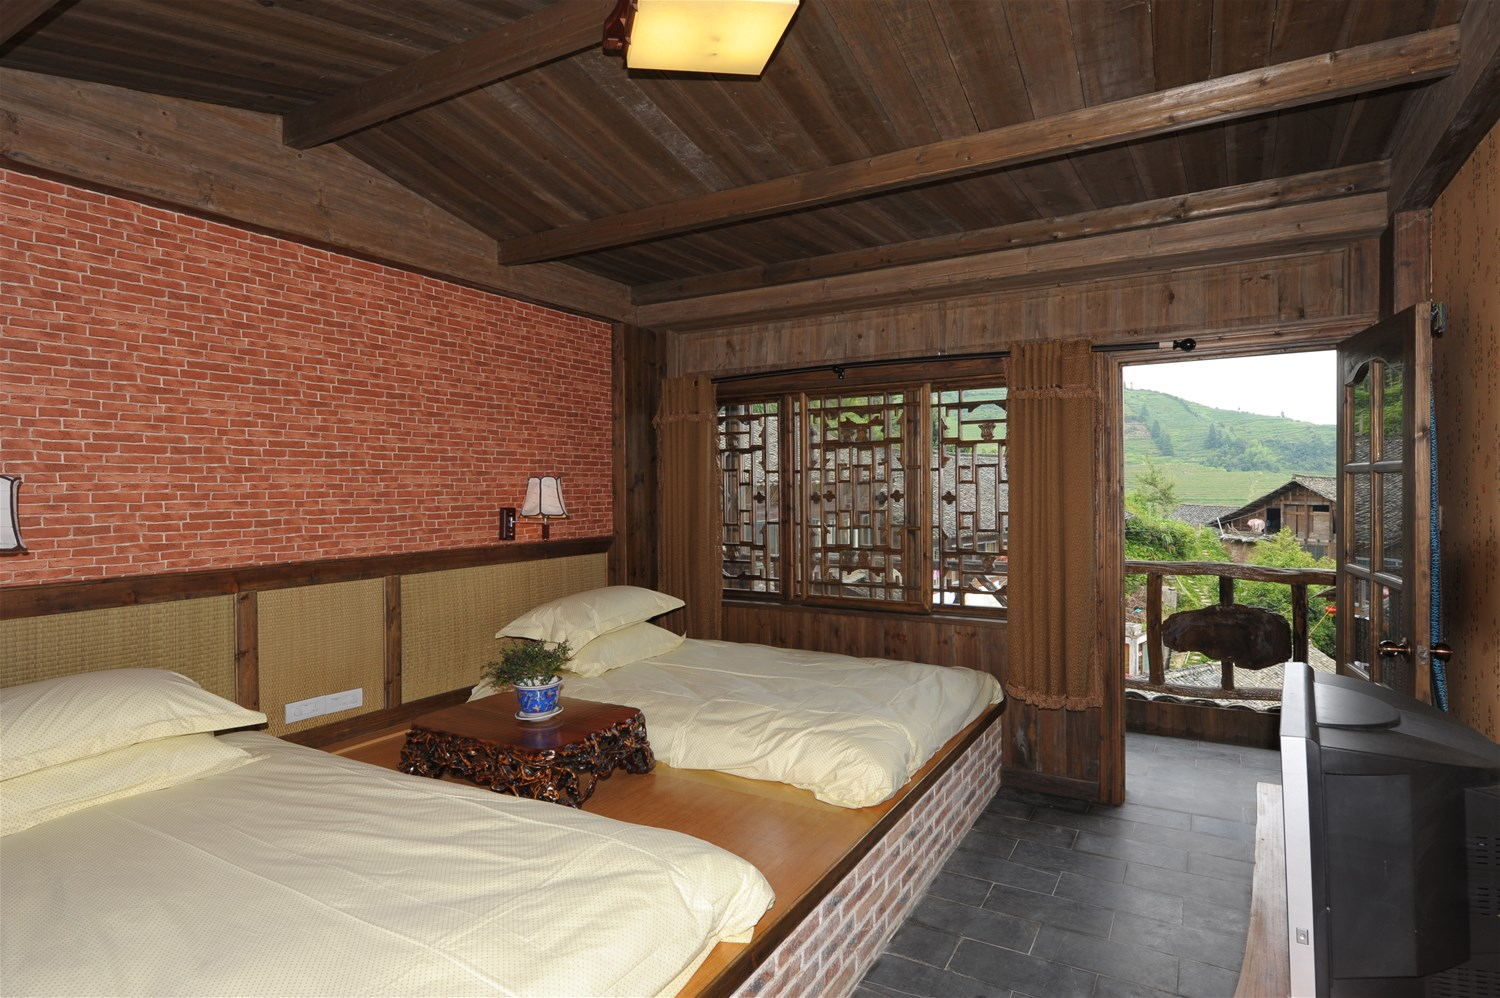 Longji star wish resort longji rice terraces china for 100 rice terrace drive columbia sc